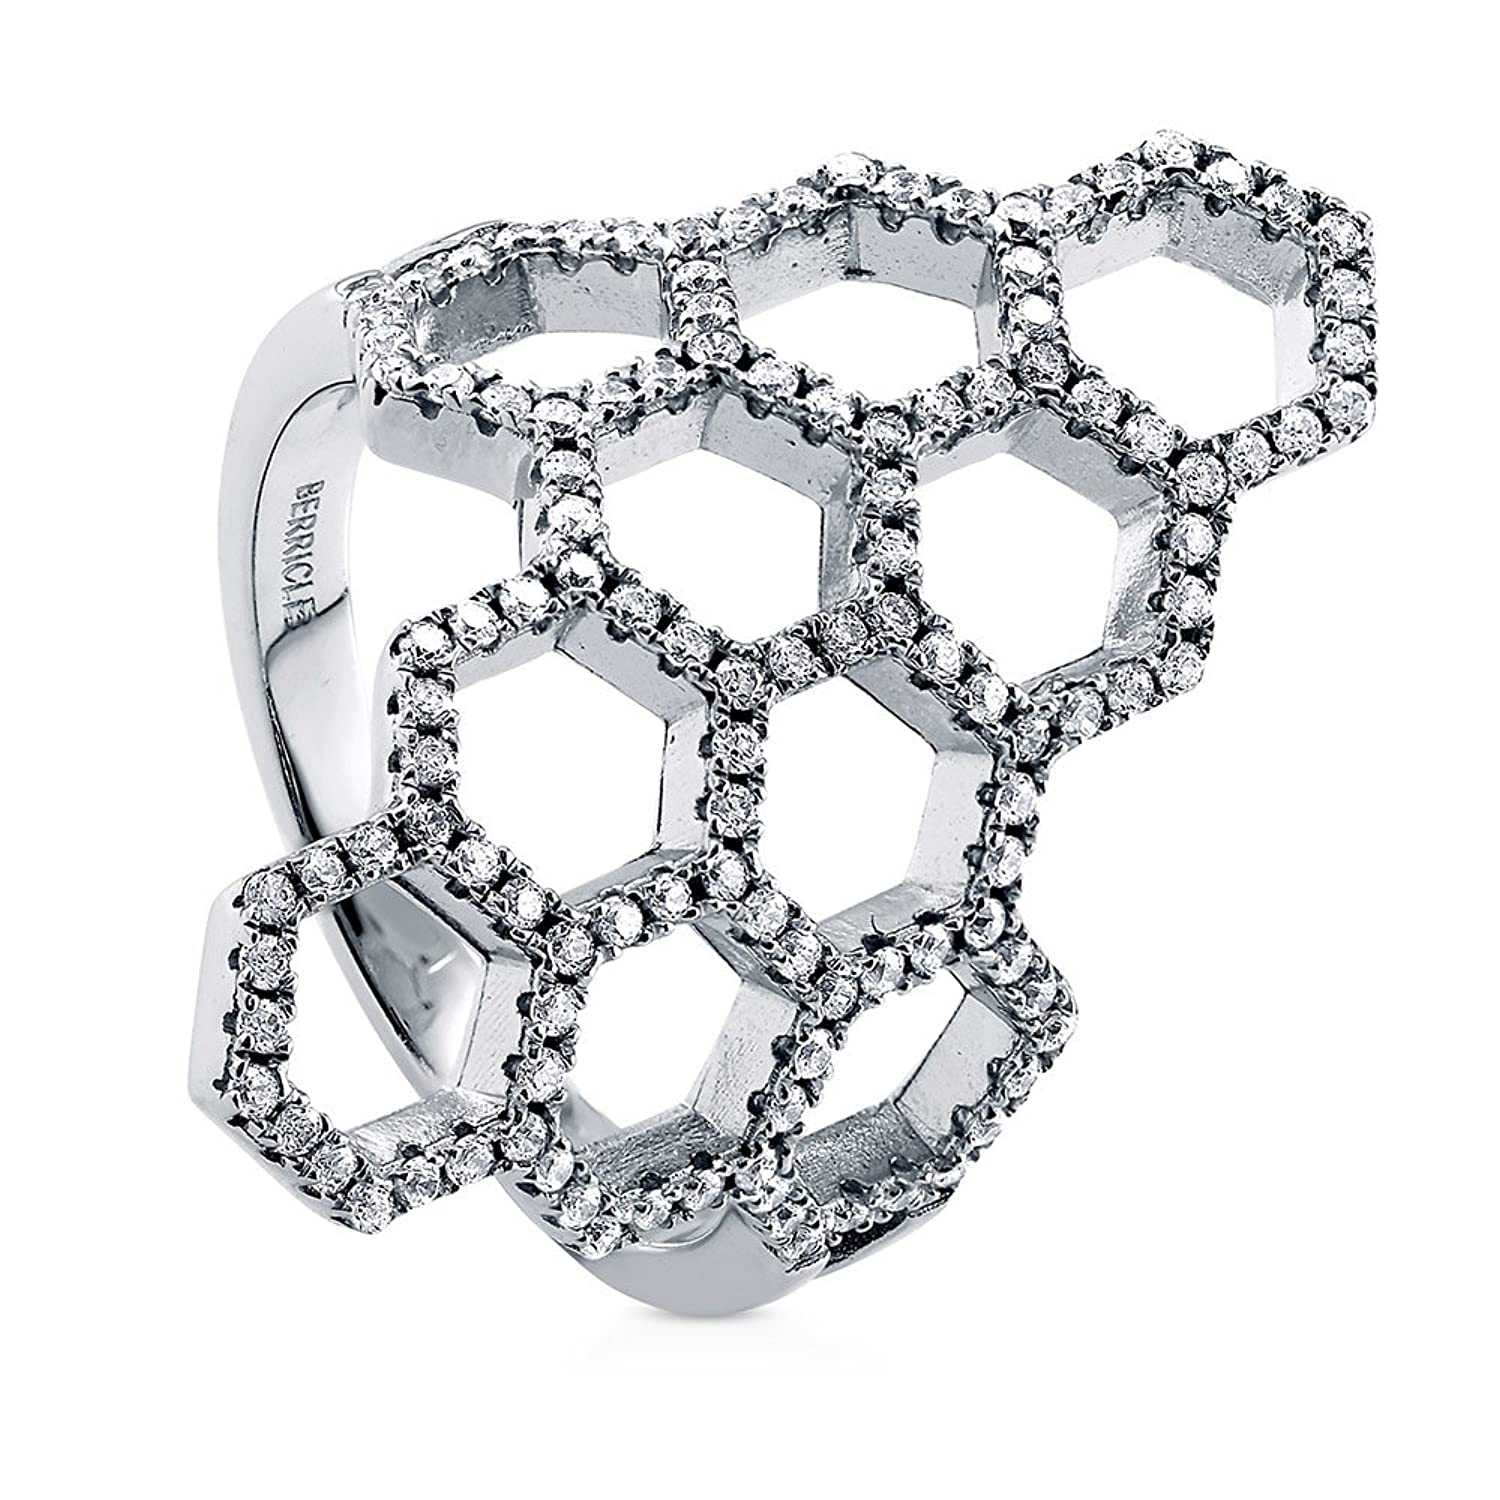 BERRICLE Rhodium Plated Sterling Silver Cubic Zirconia CZ Honeycomb Fashion Right Hand Cocktail Ring